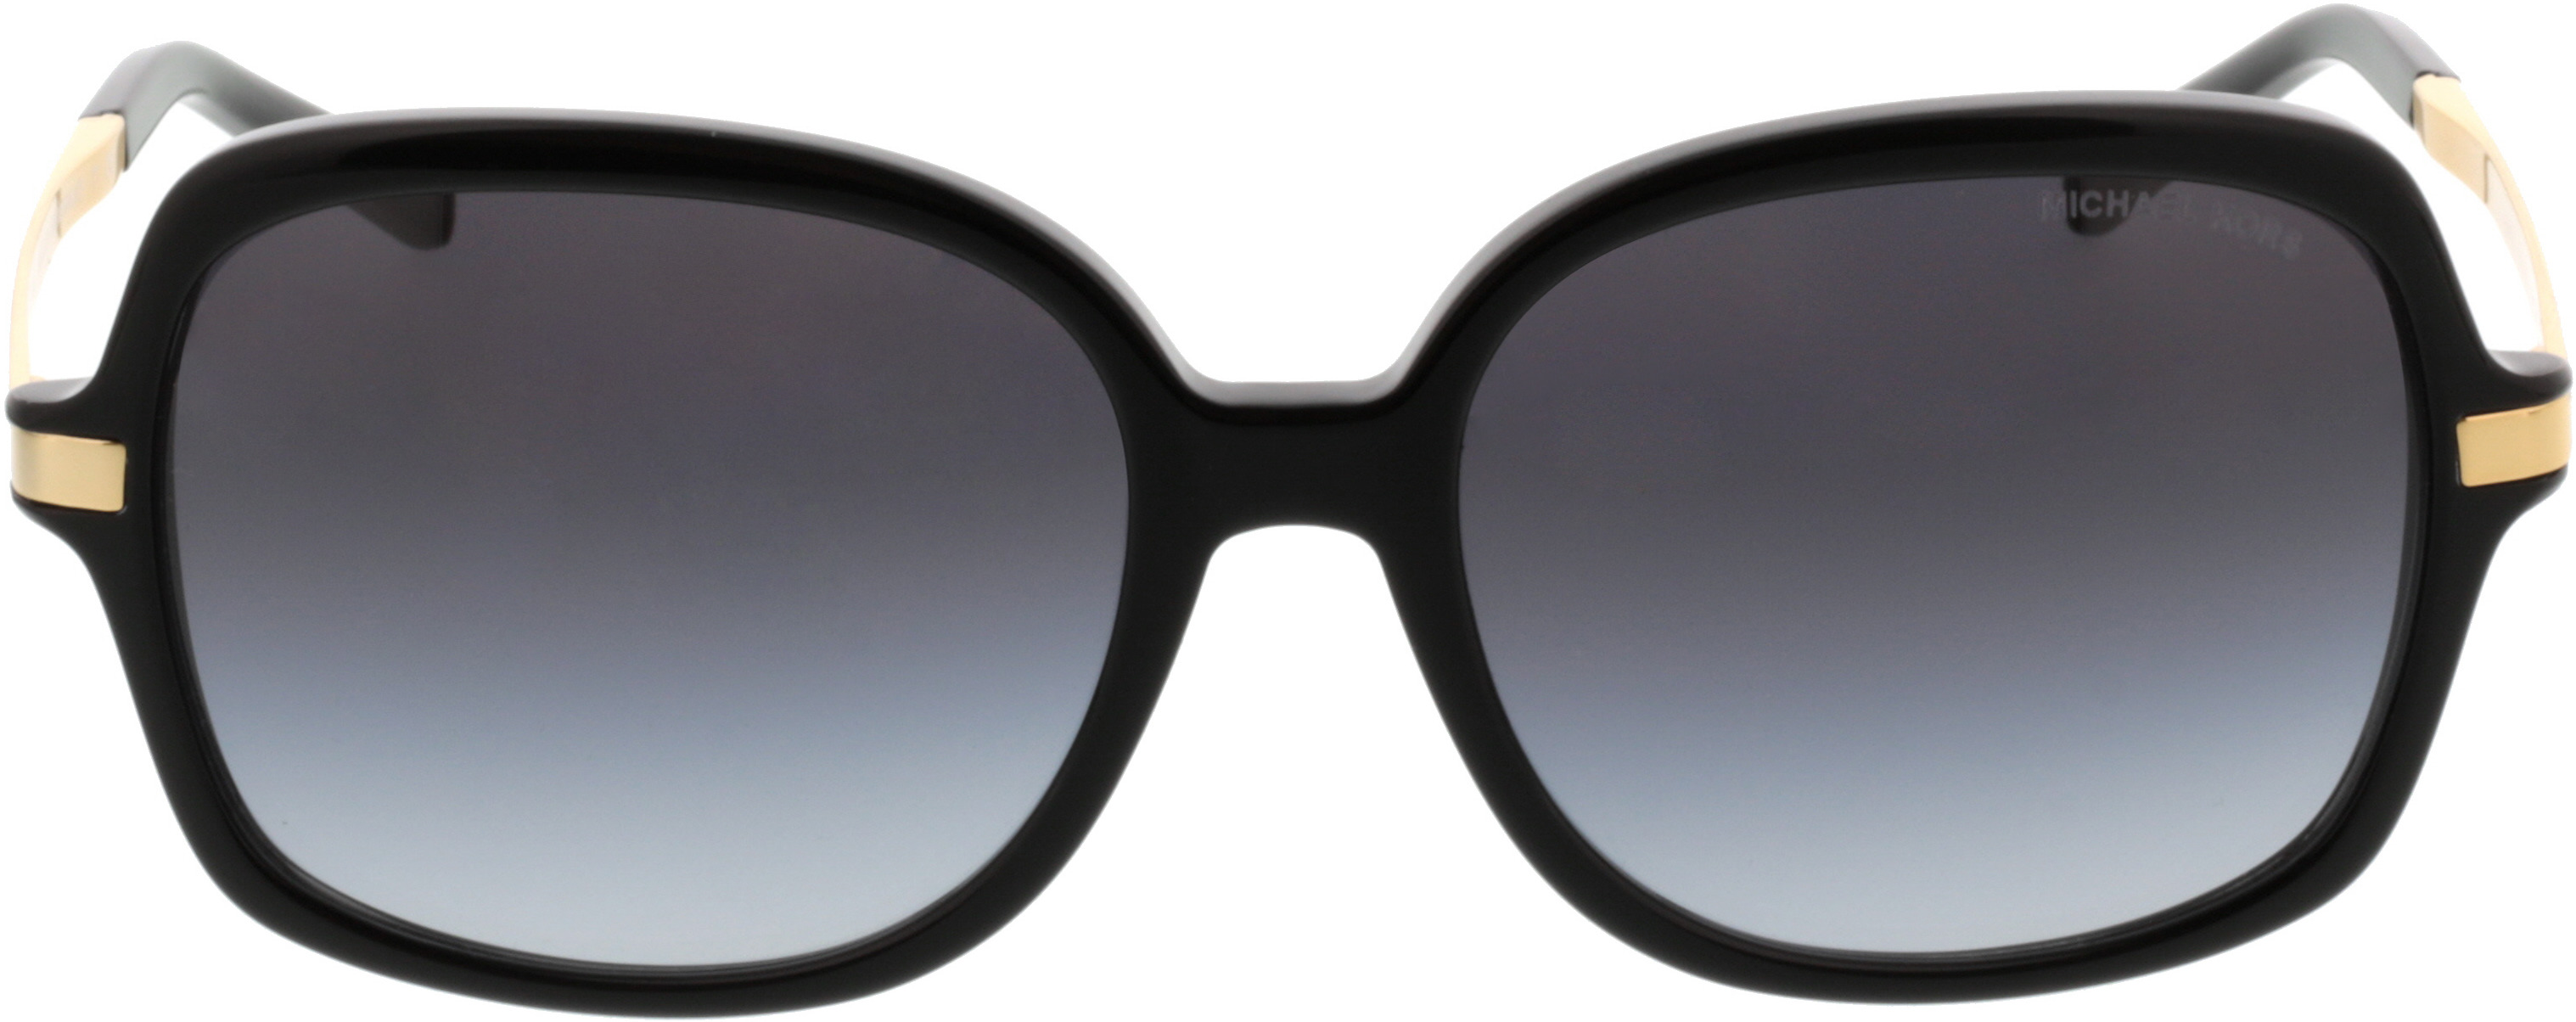 Picture of glasses model Michael Kors Adrianna Ii MK2024 316011 57-16 in angle 0